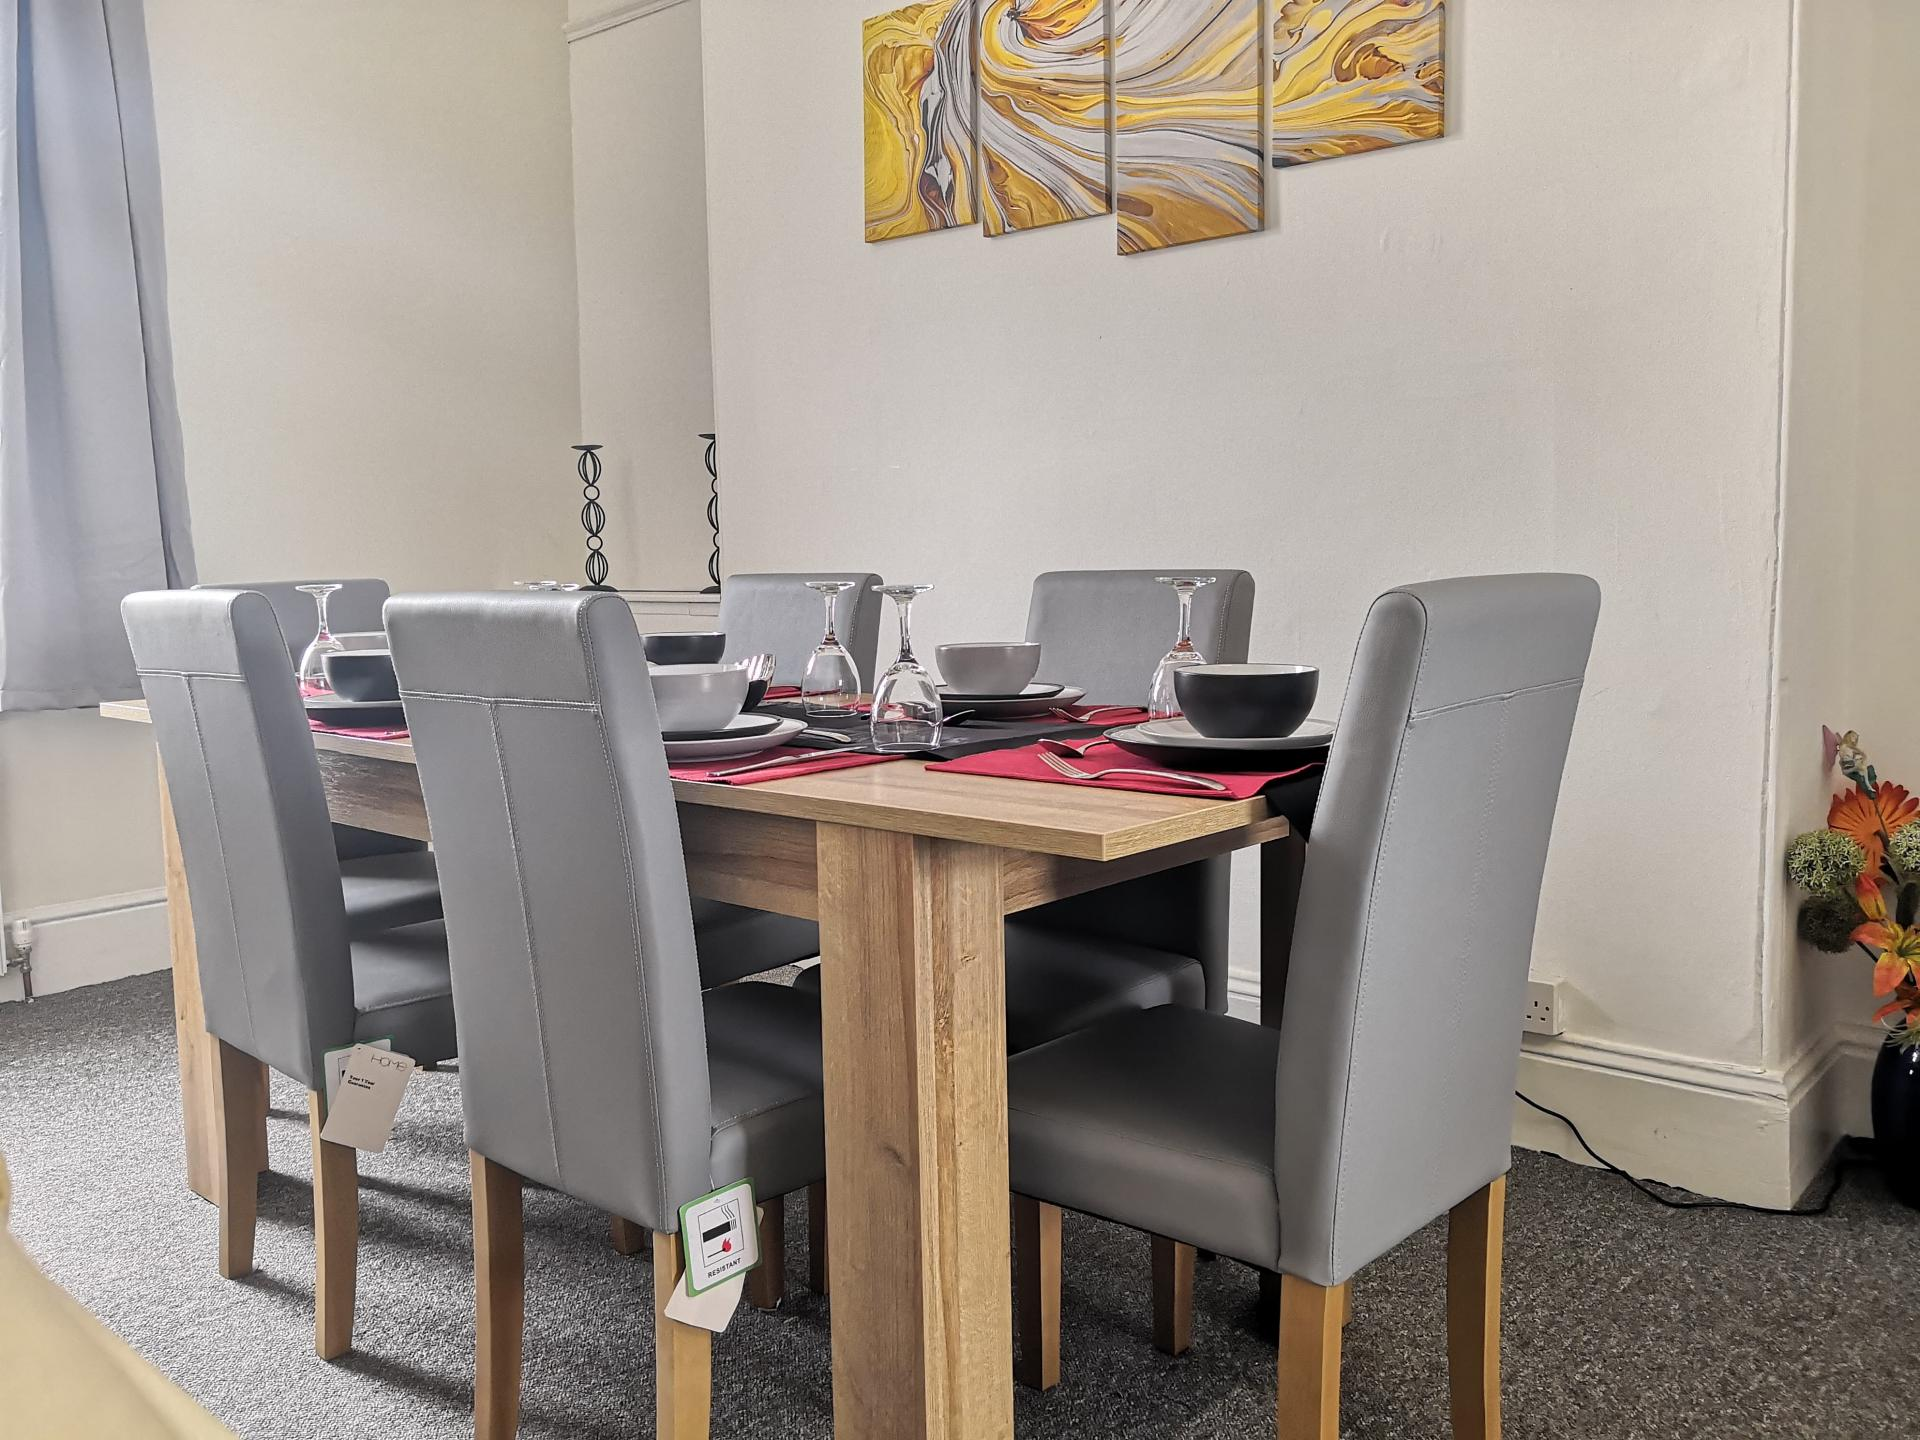 Dining Area at Nicks Place Apartment, Mutley, Plymouth